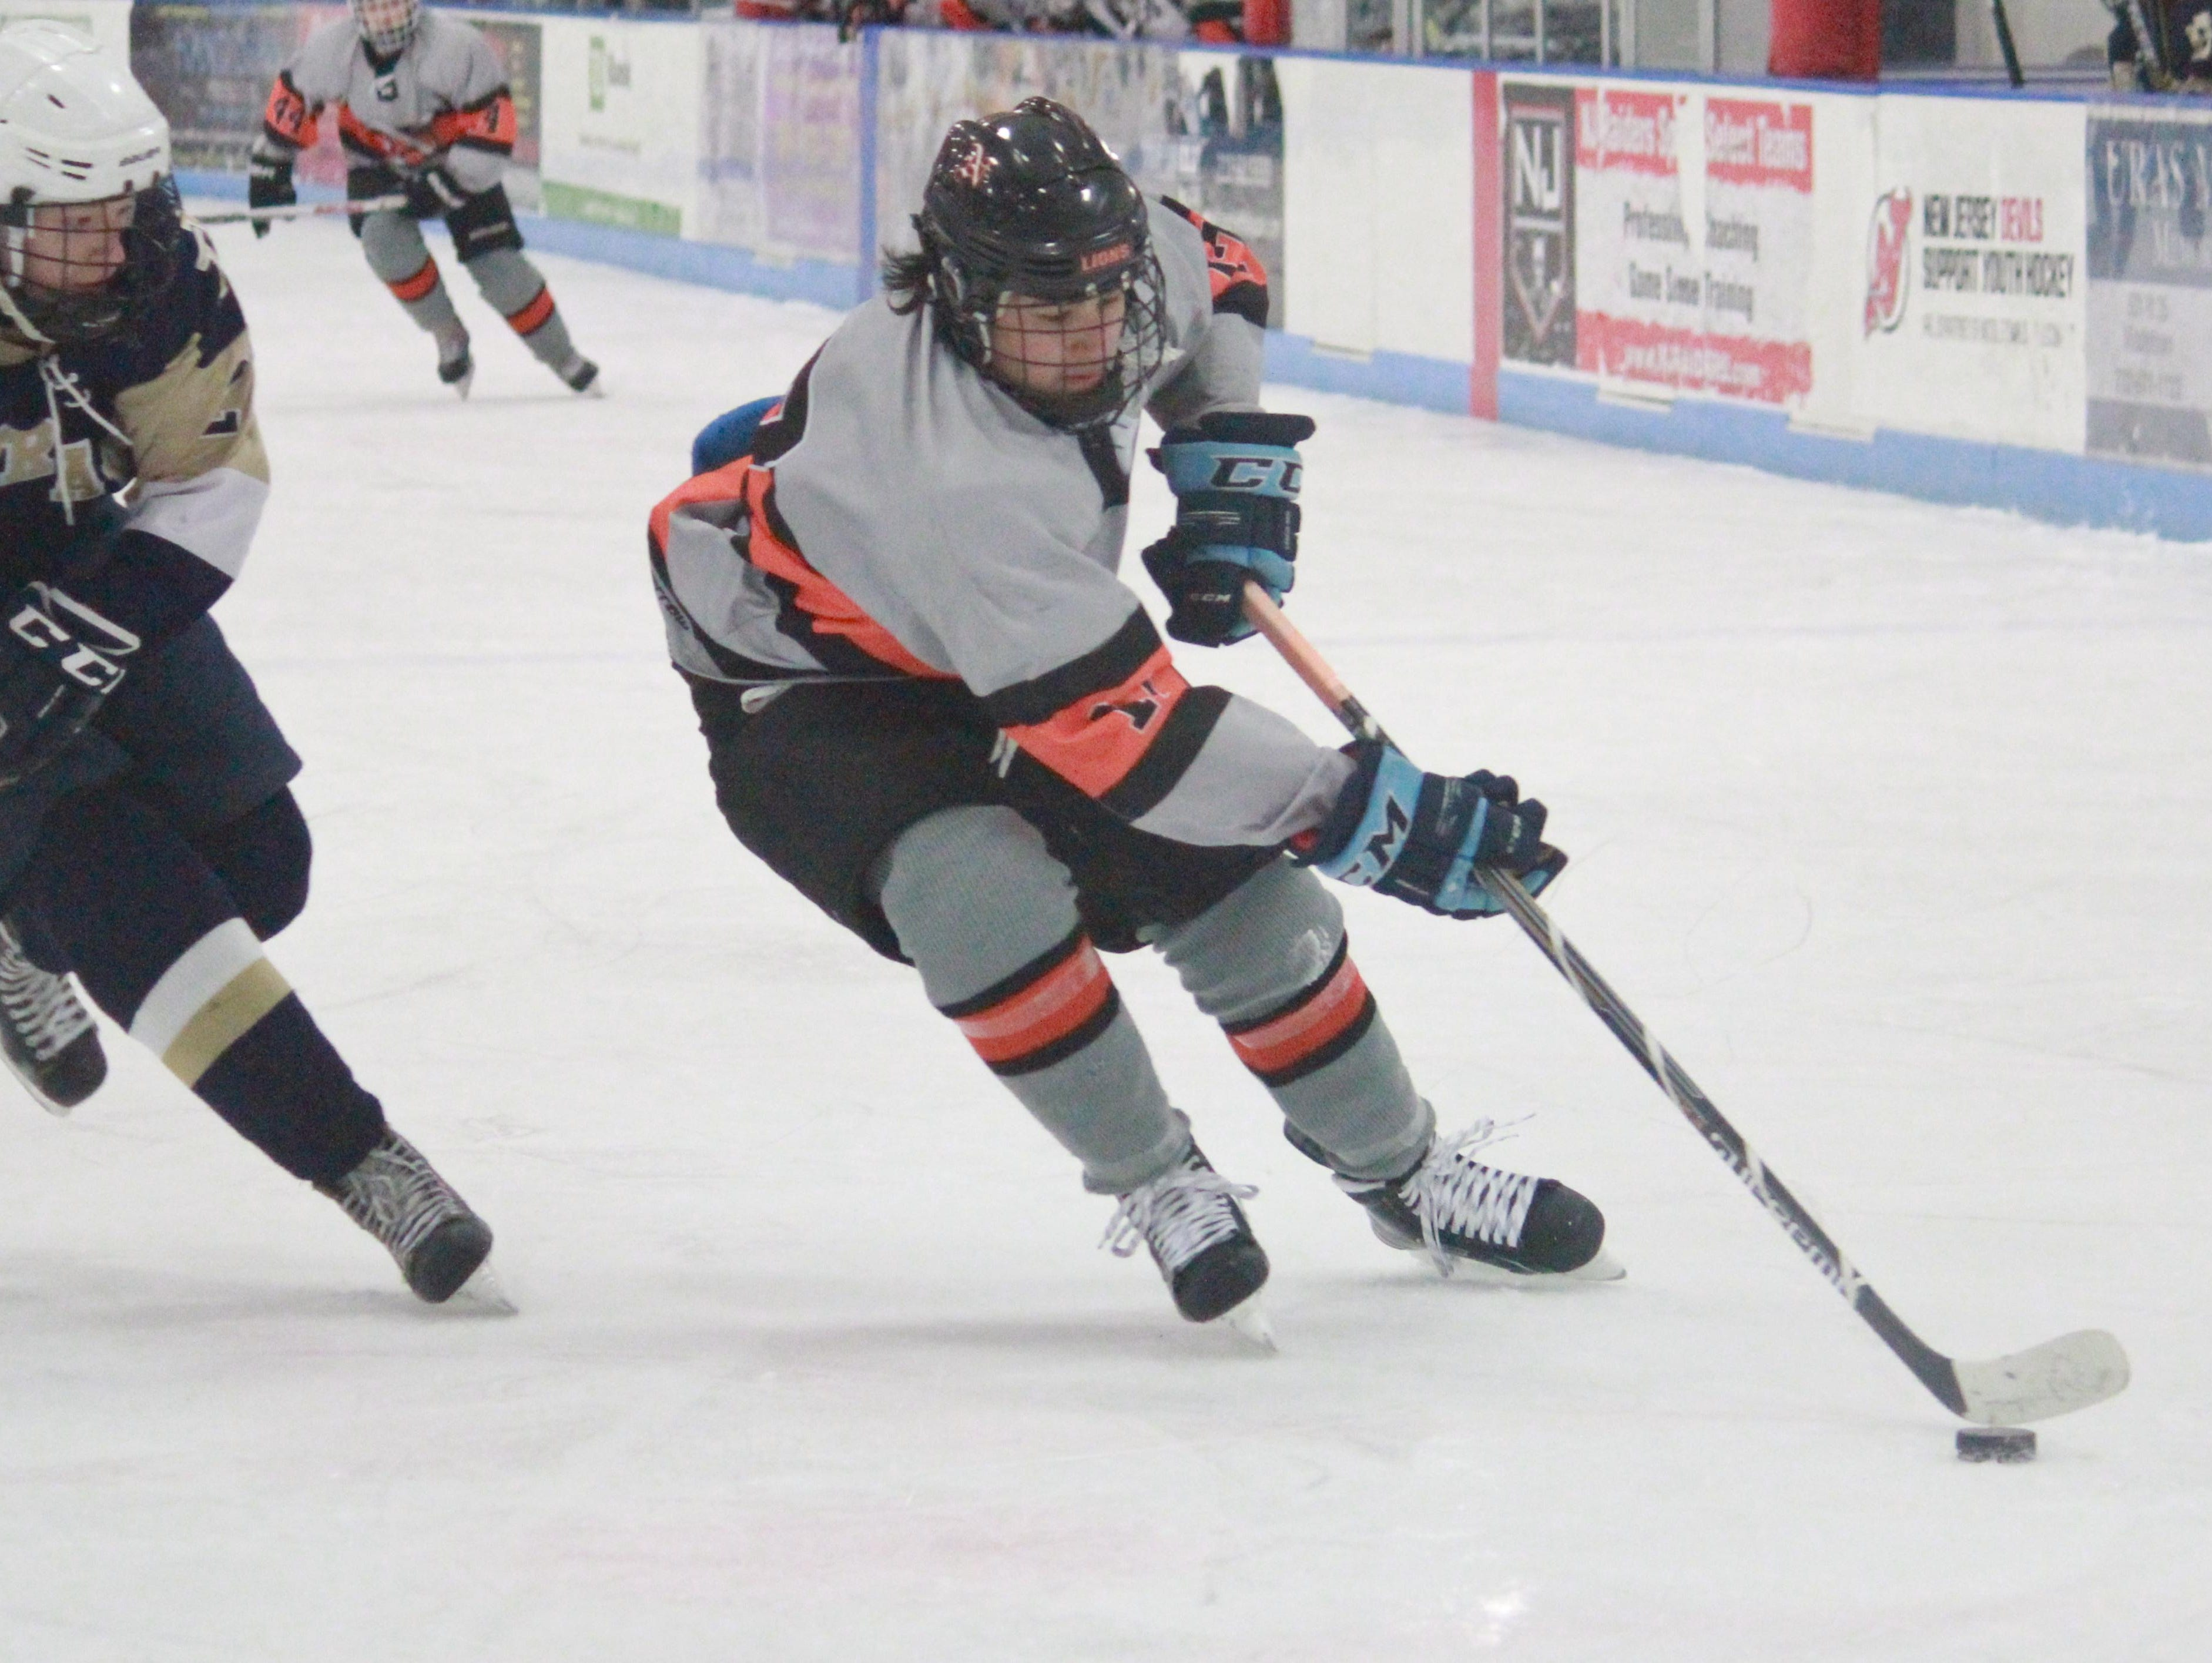 Khristian Acosta of Middletown North has committed to Quinnipiac University, and will play in the APP All-Star Hockey Classic on Aug. 23.